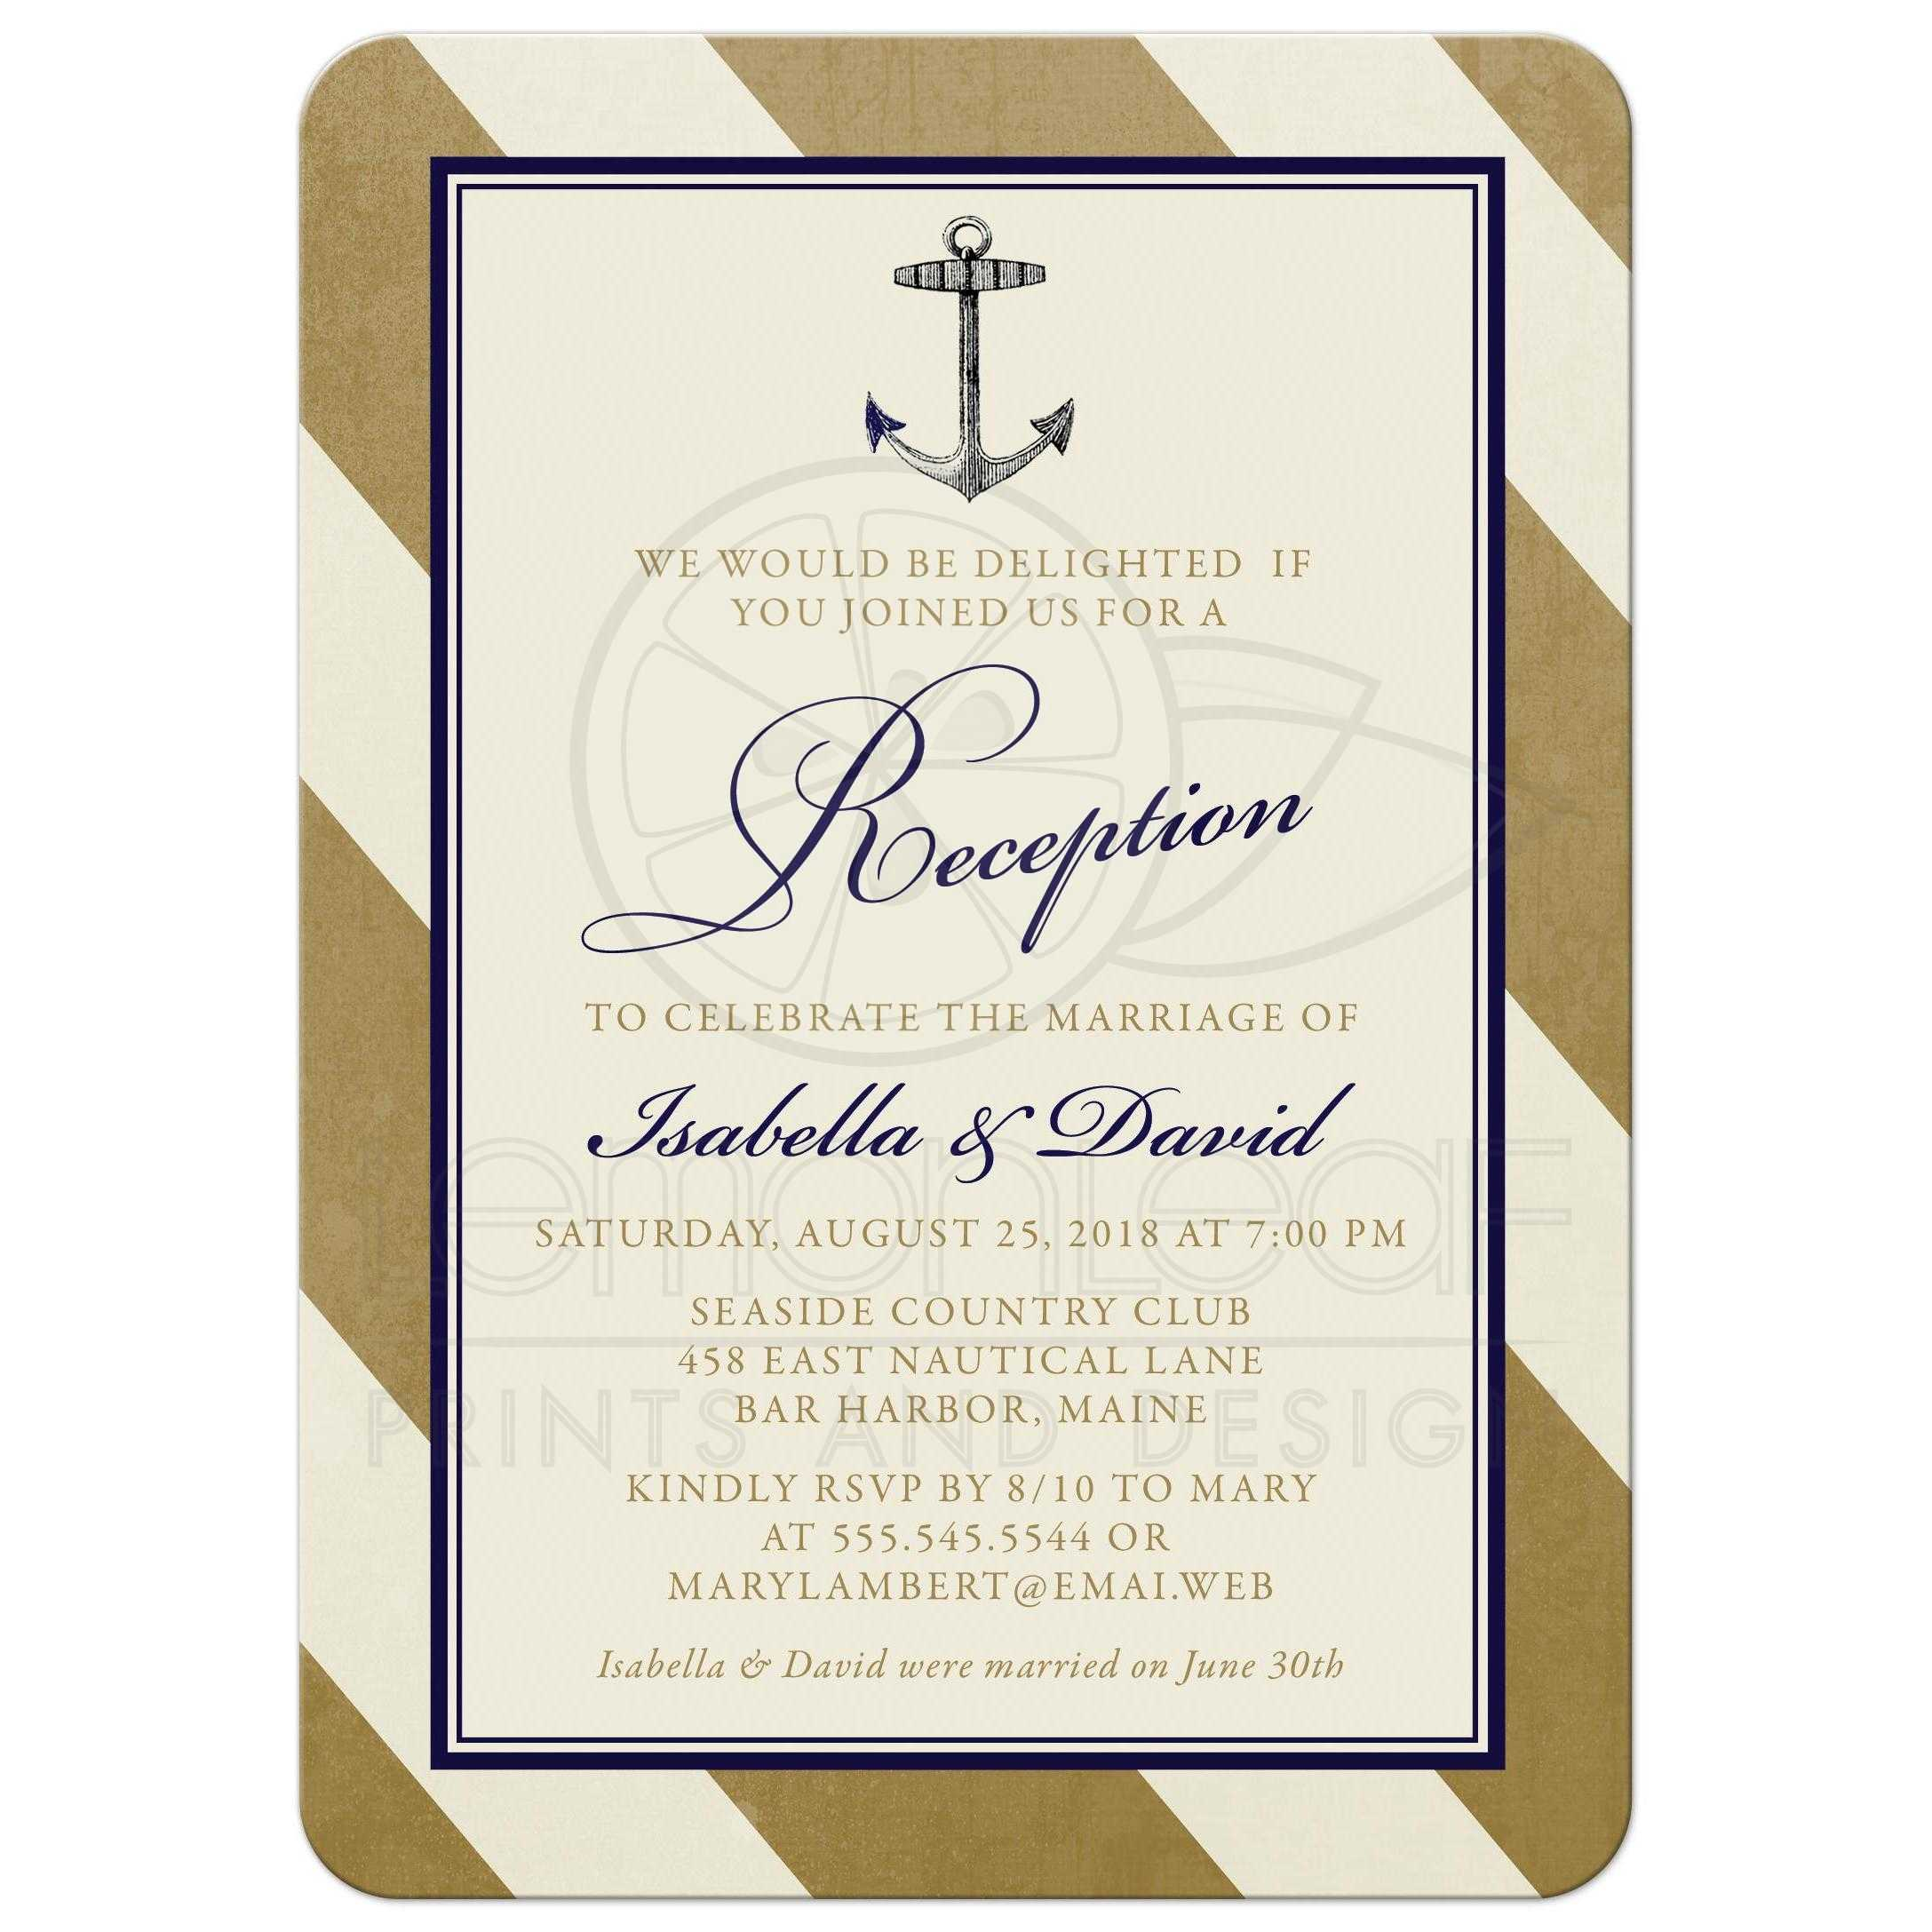 Post Wedding Reception Invitation Etiquette Wedding Invitation 21 Beautiful  At Home Wedding Reception Invitations Destination Wedding